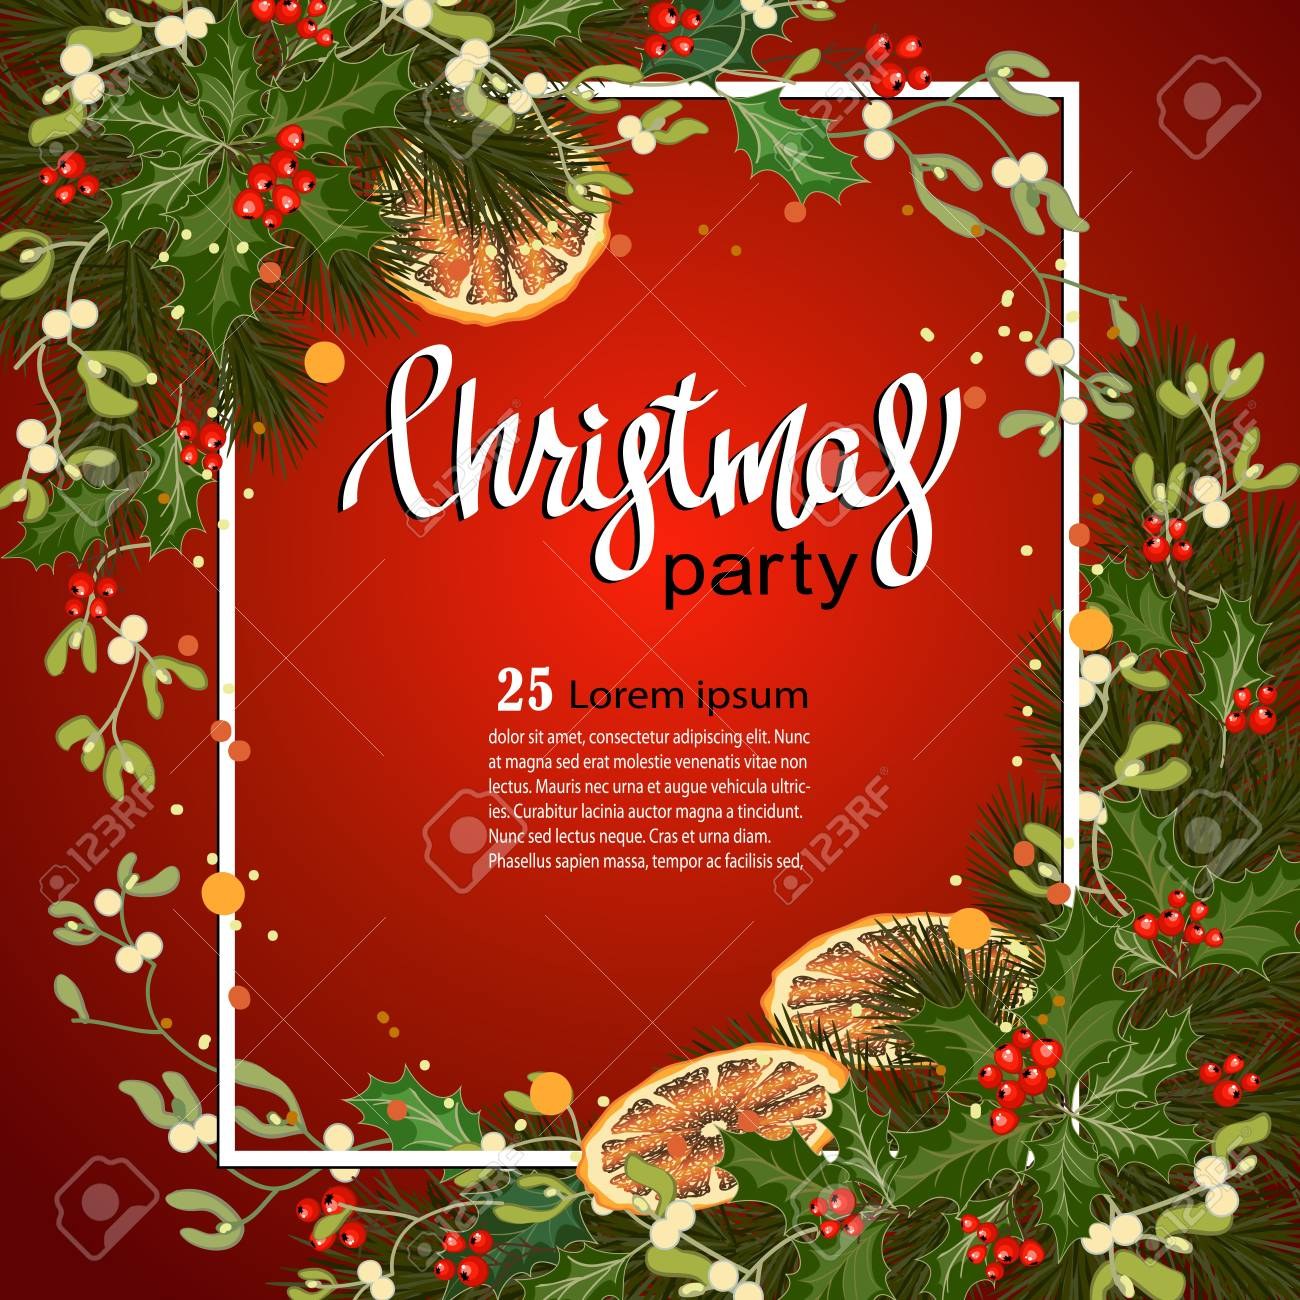 Merry christmas greeting card with traditional decorations and merry christmas greeting card with traditional decorations and place for message christmas background with branches m4hsunfo